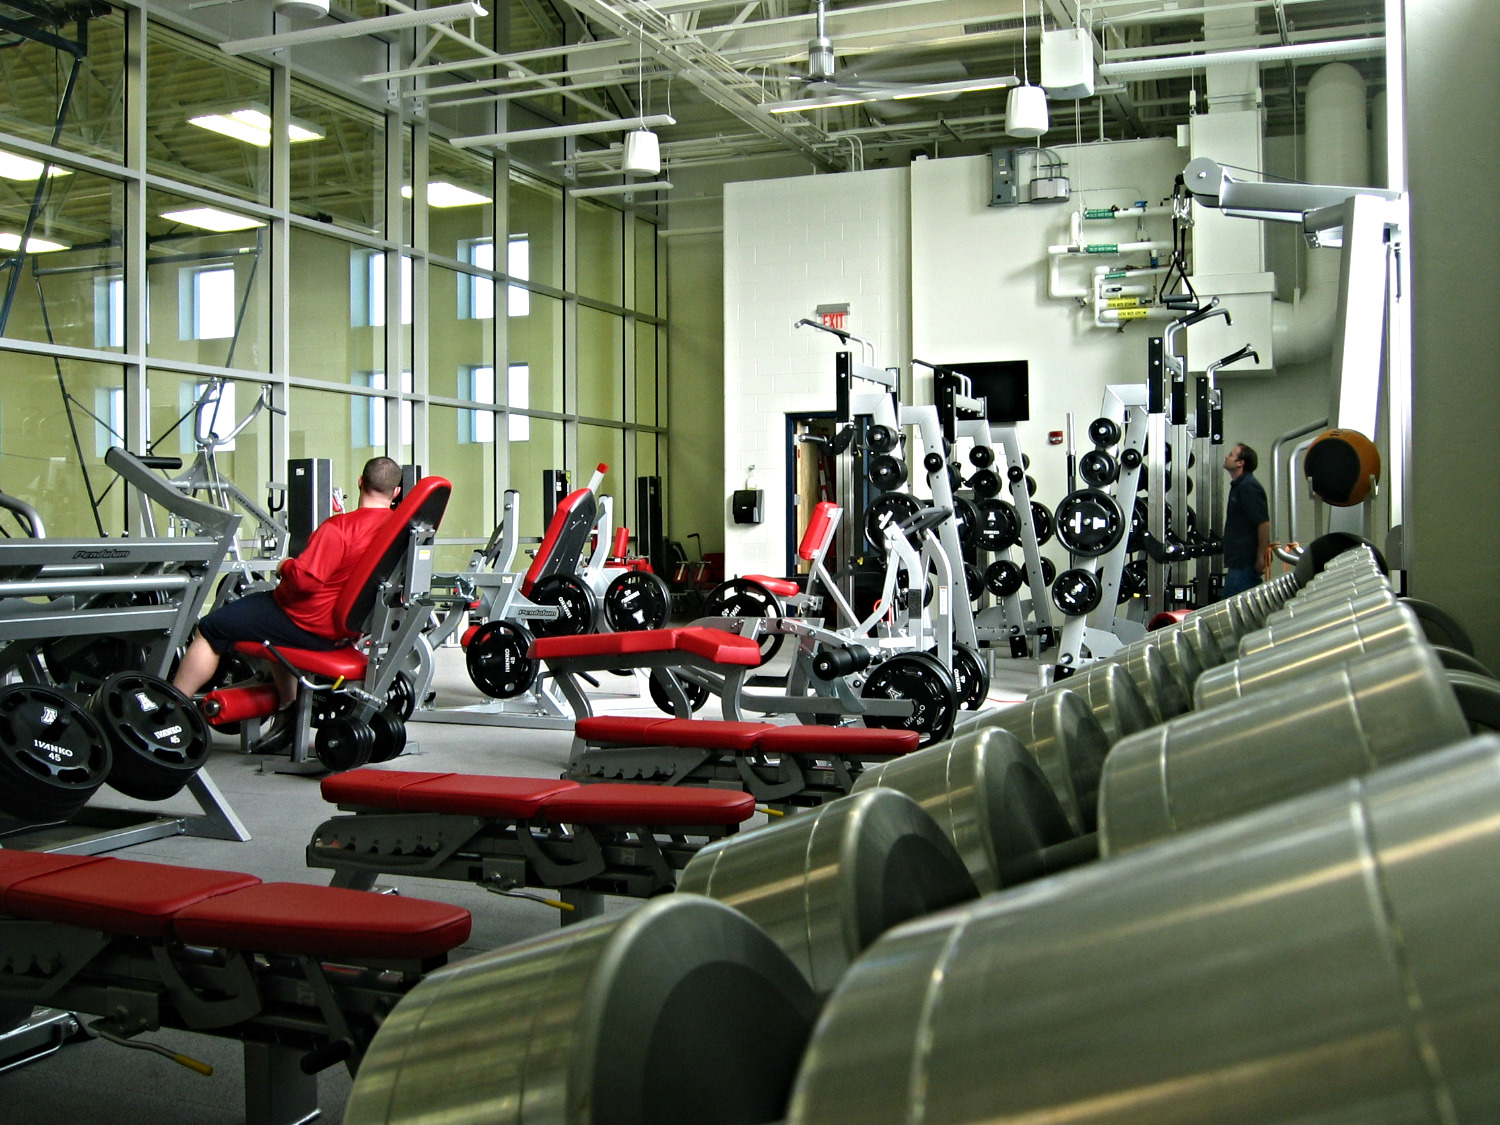 av systems technology group Leap Motion Technology lighting in uofa weightroom